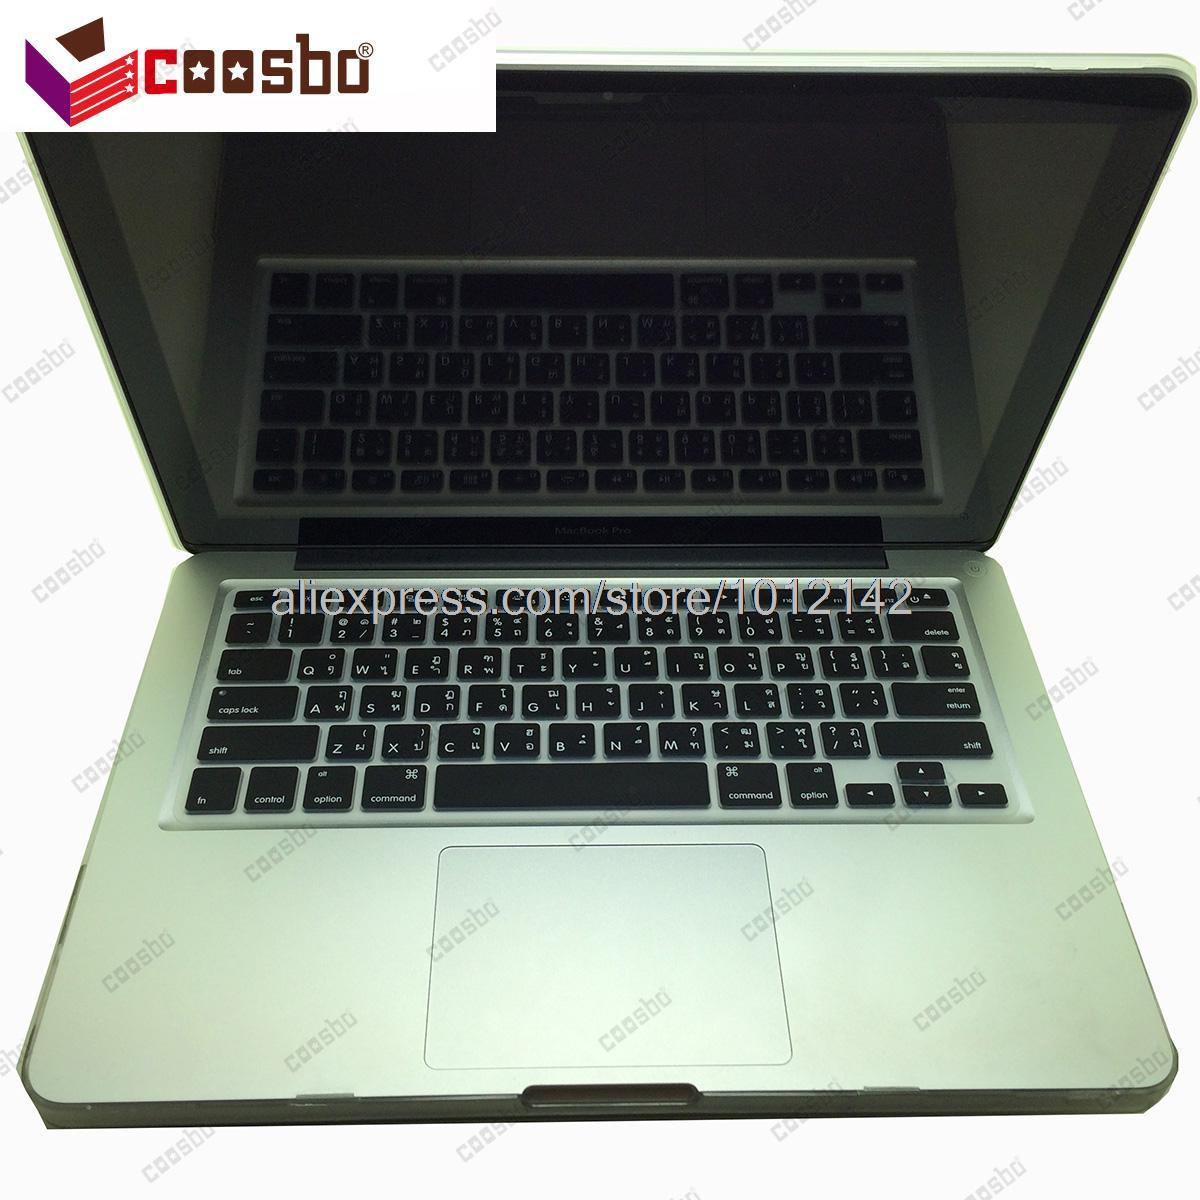 New 50pcs Wholesale lower price Thailand Thai Colors Keyboard Skin Protector Cover for Mac Macbook Air Pro Retina / G6 13 15 17